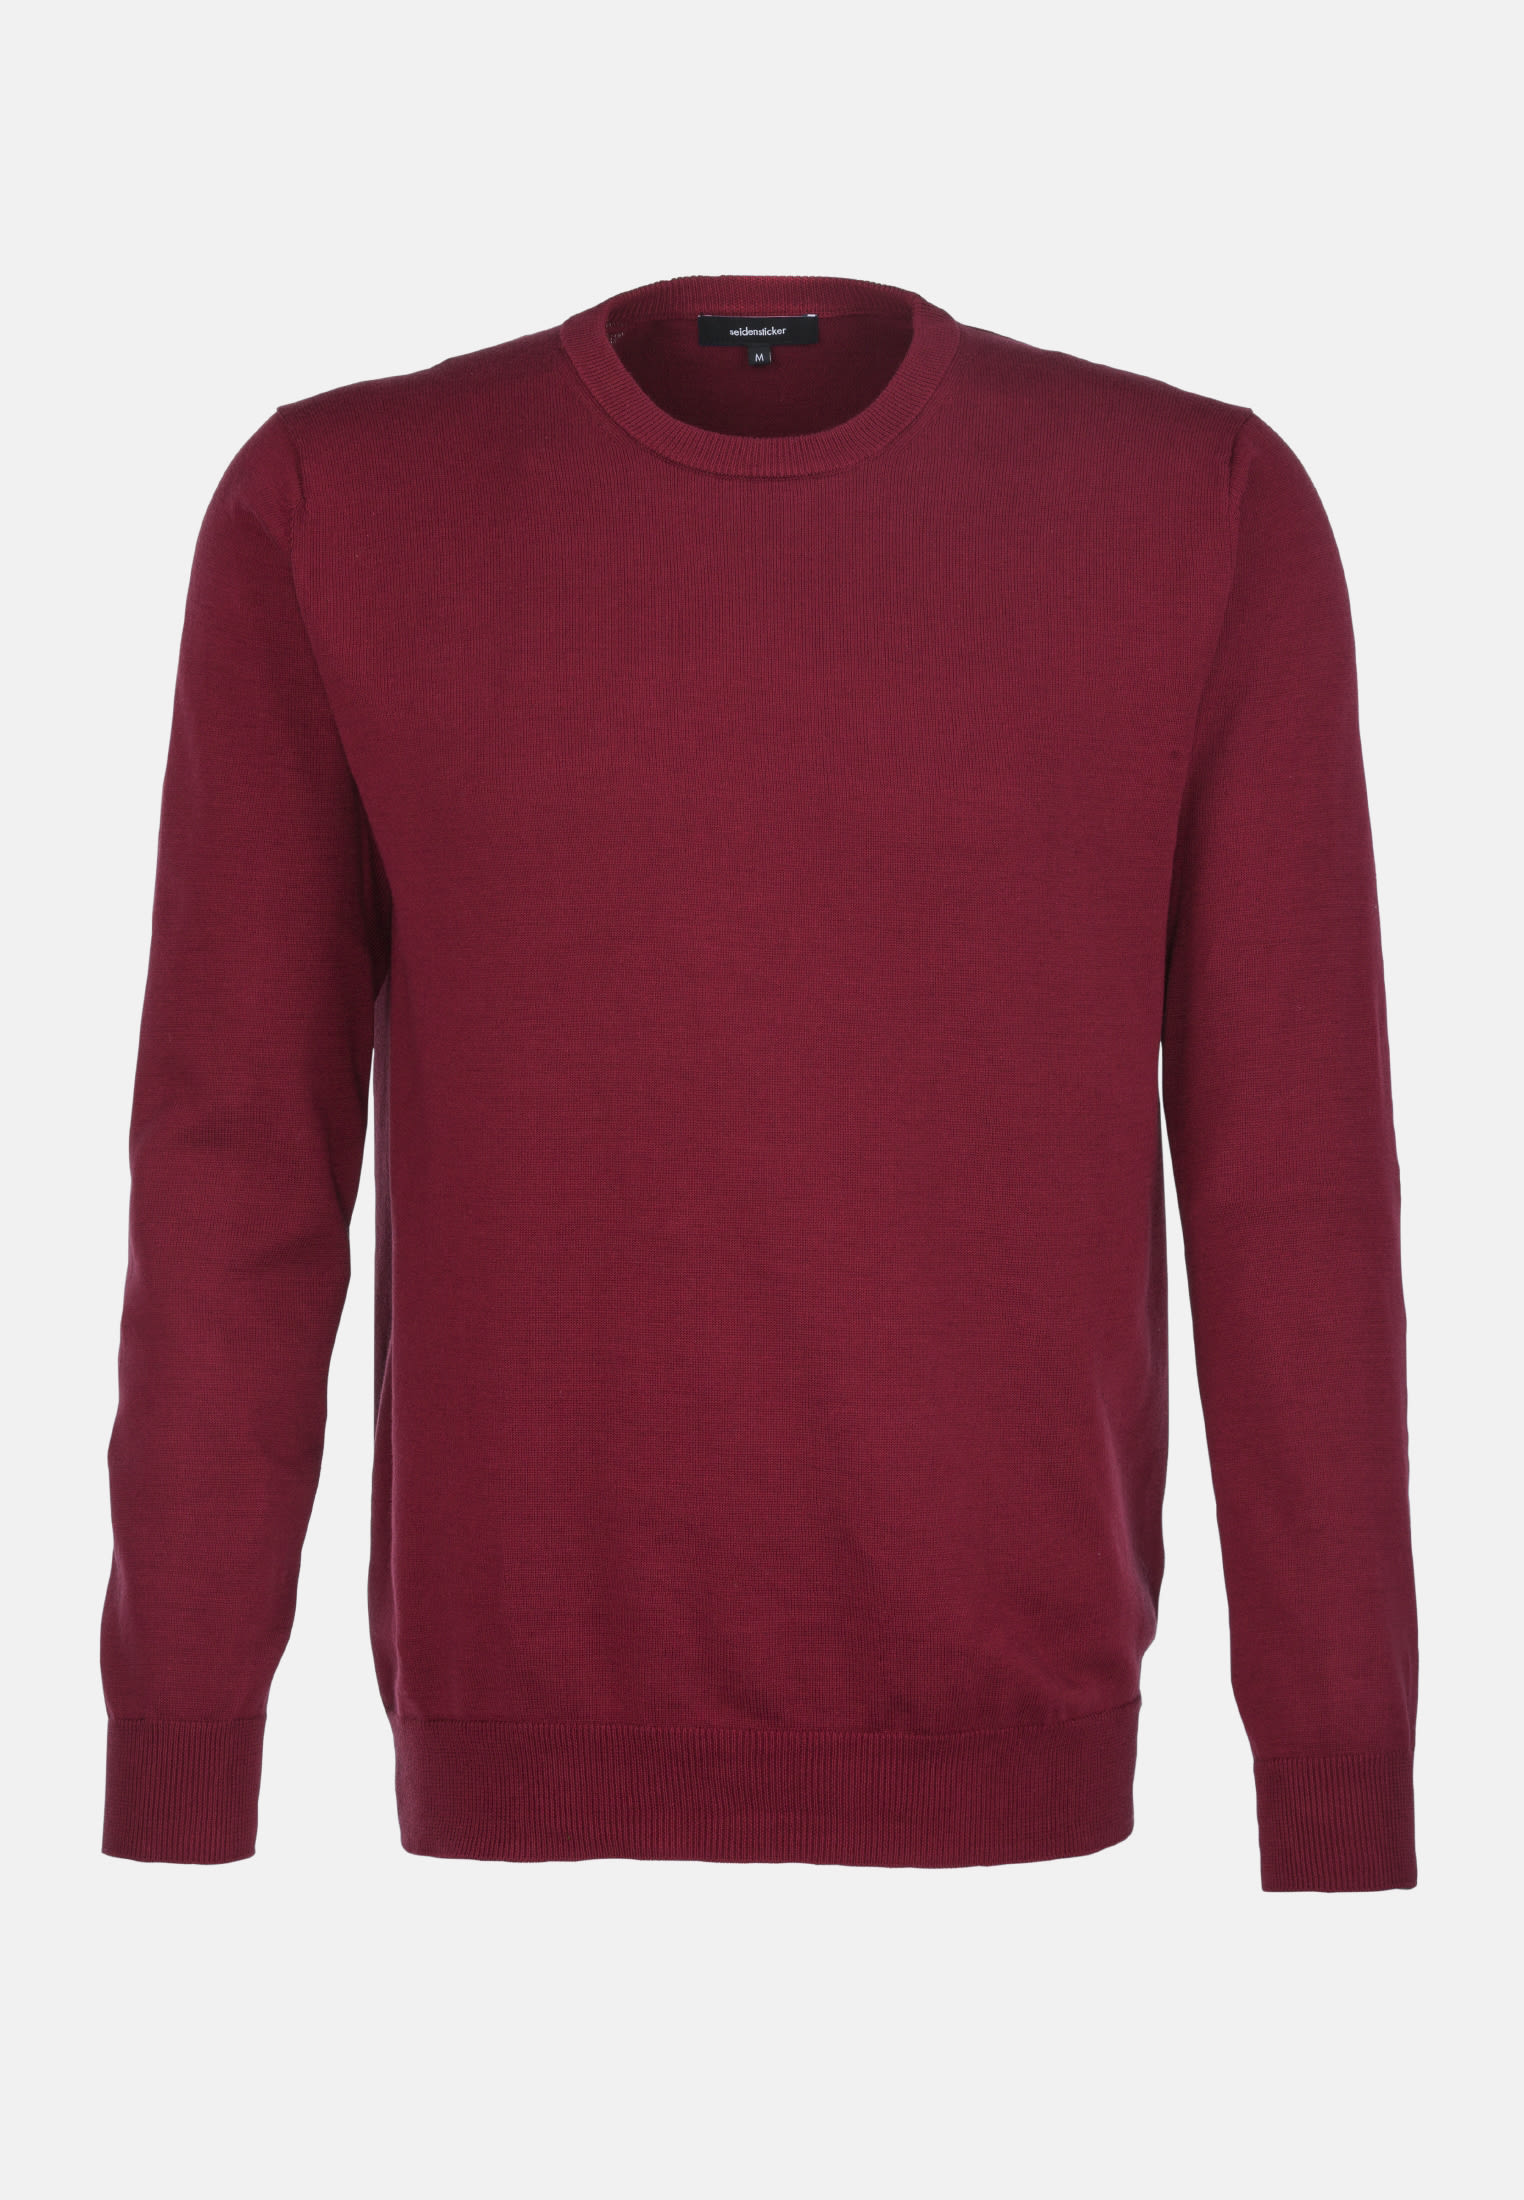 Crew Neck Pullover made of 100% Cotton in Red |  Seidensticker Onlineshop